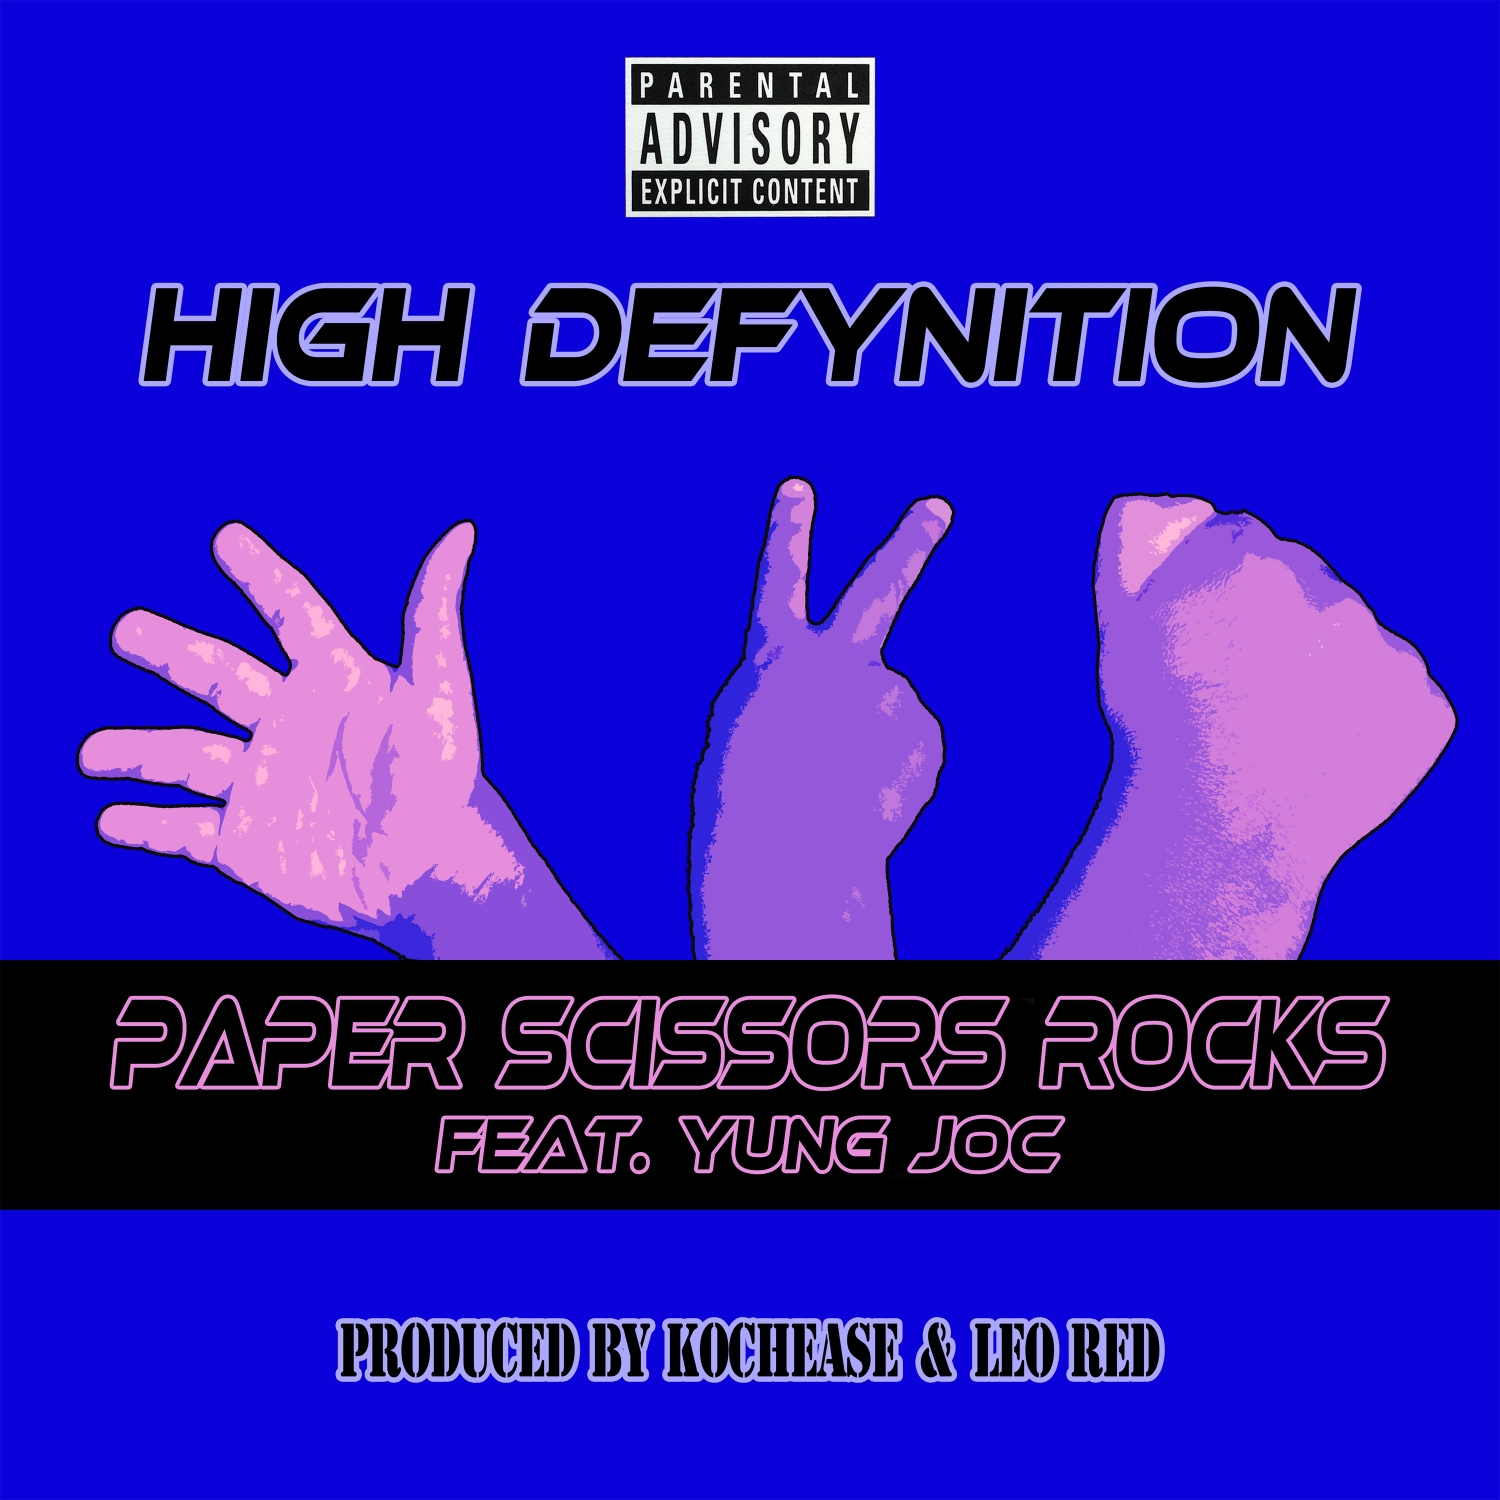 High Defynition & Yung Joc - Paper Scissors Rocks (feat. Yung Joc) (Original Mix)